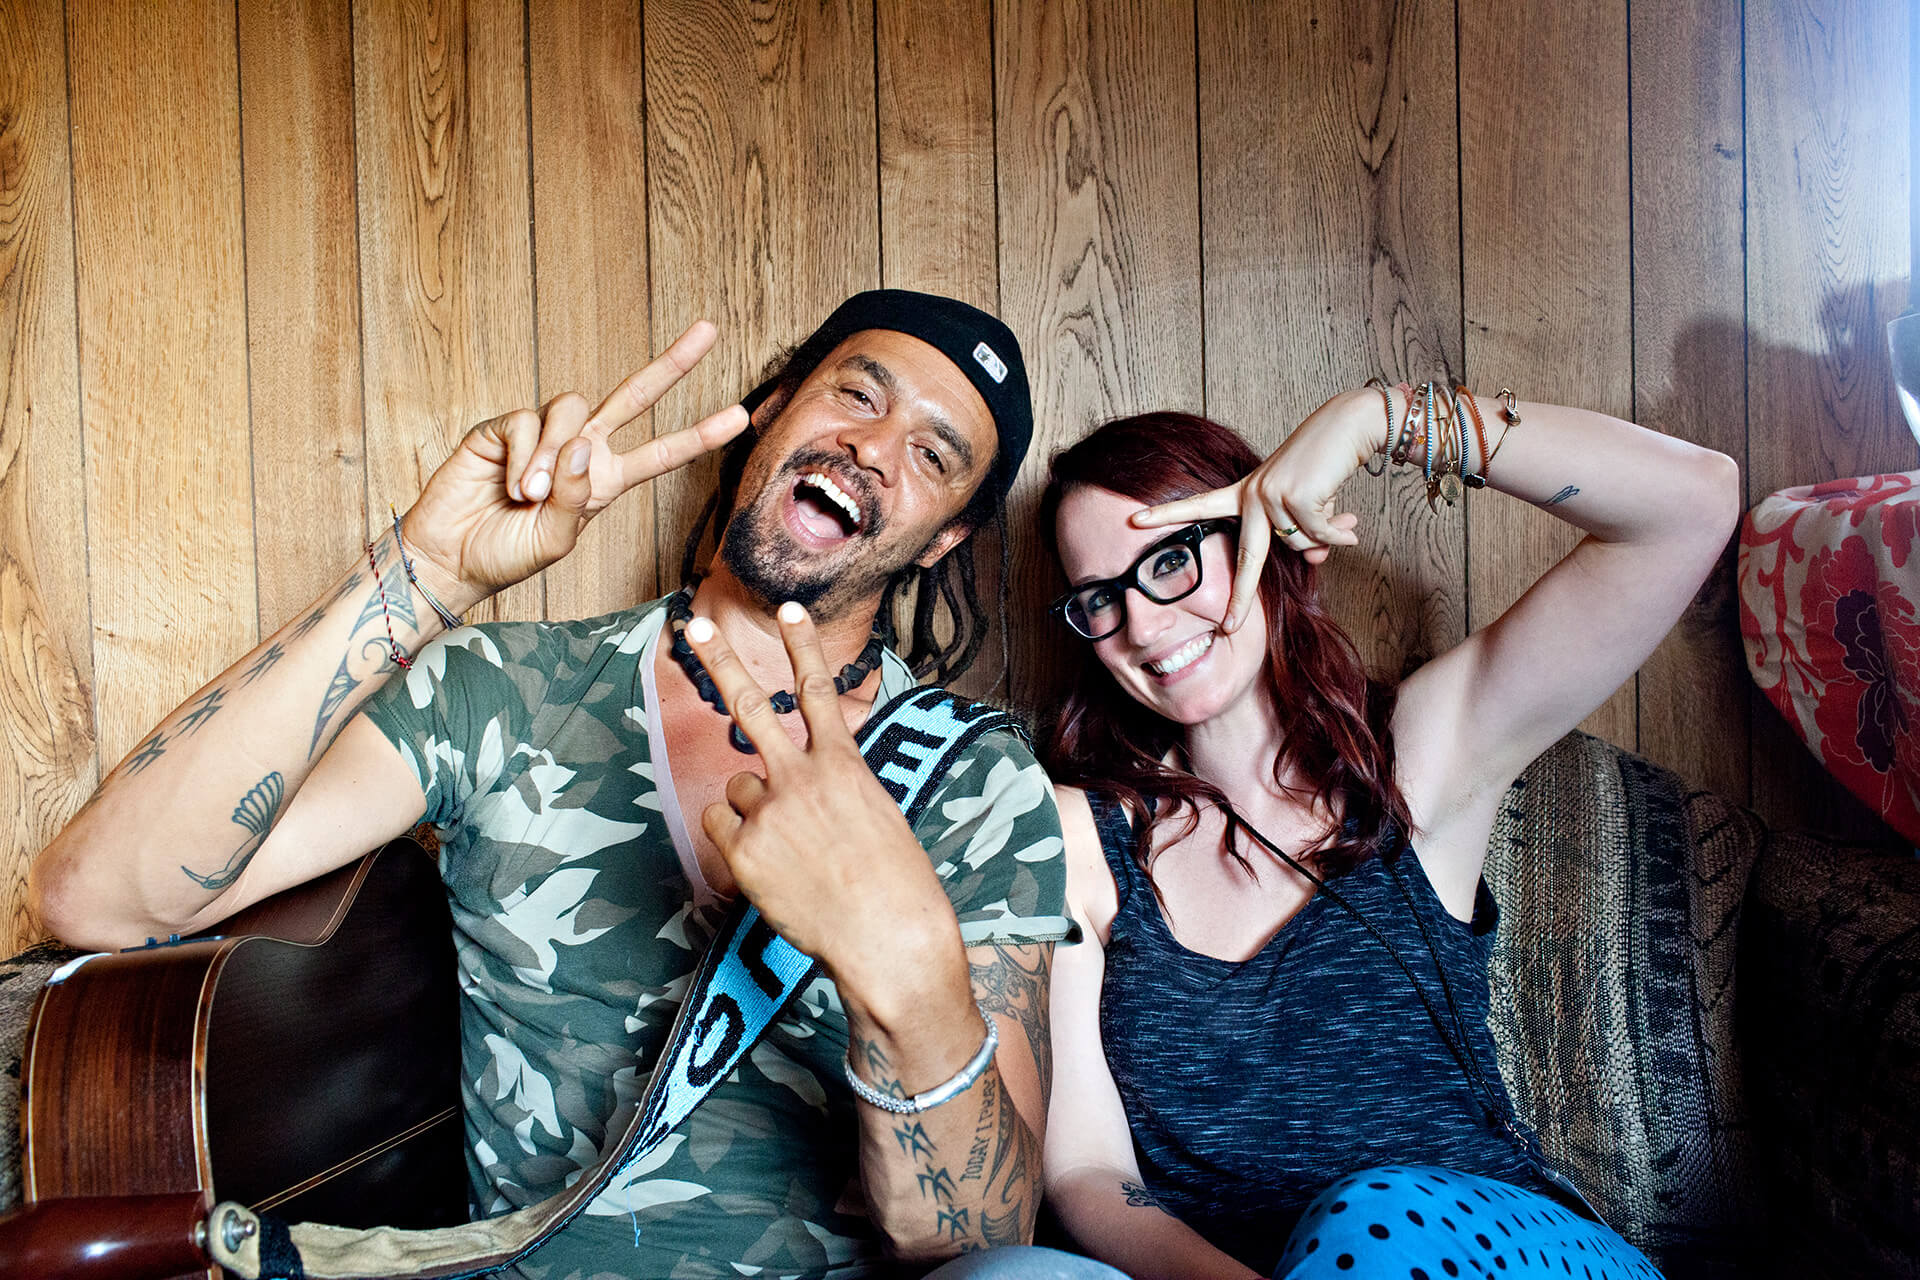 mf and ingrid michaelson by Steve Rosenfield Photography